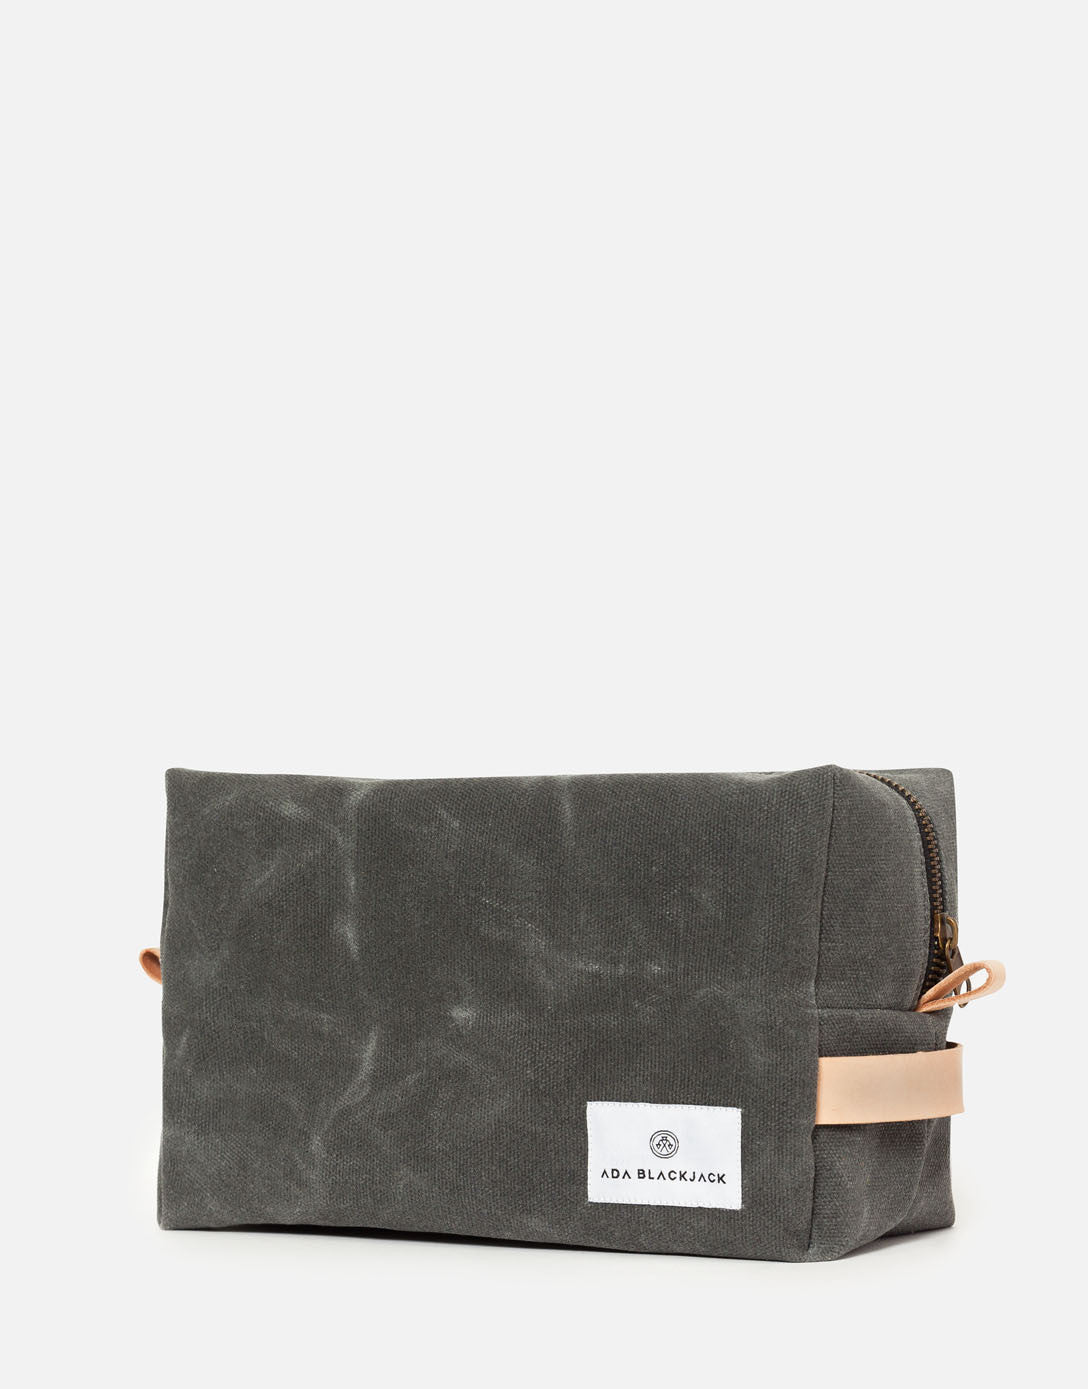 Ada Blackjack Dopp Kit